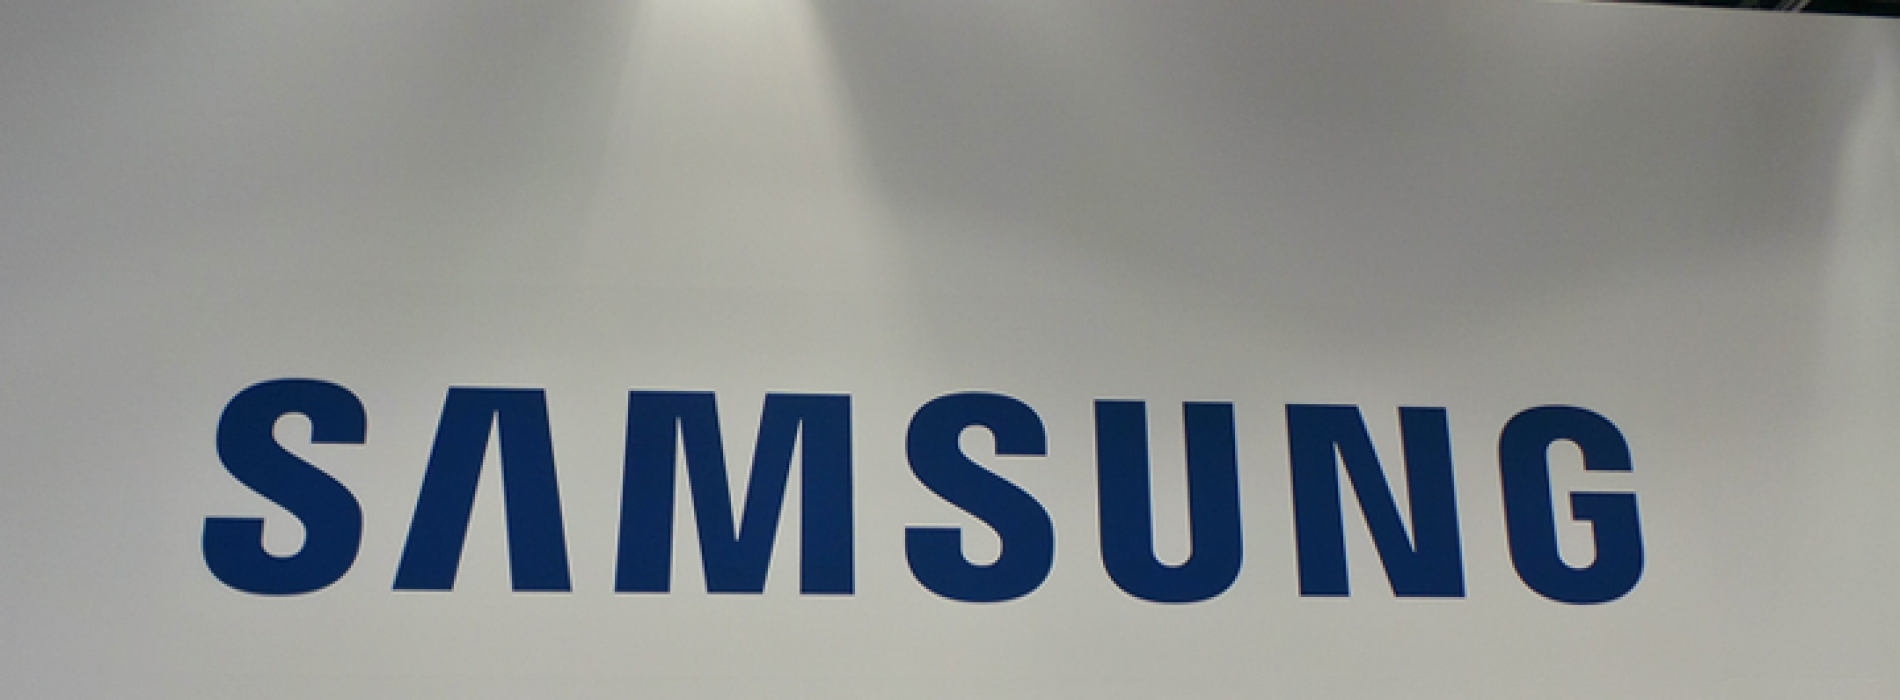 Samsung 'Galaxy Mega' devices coming soon?